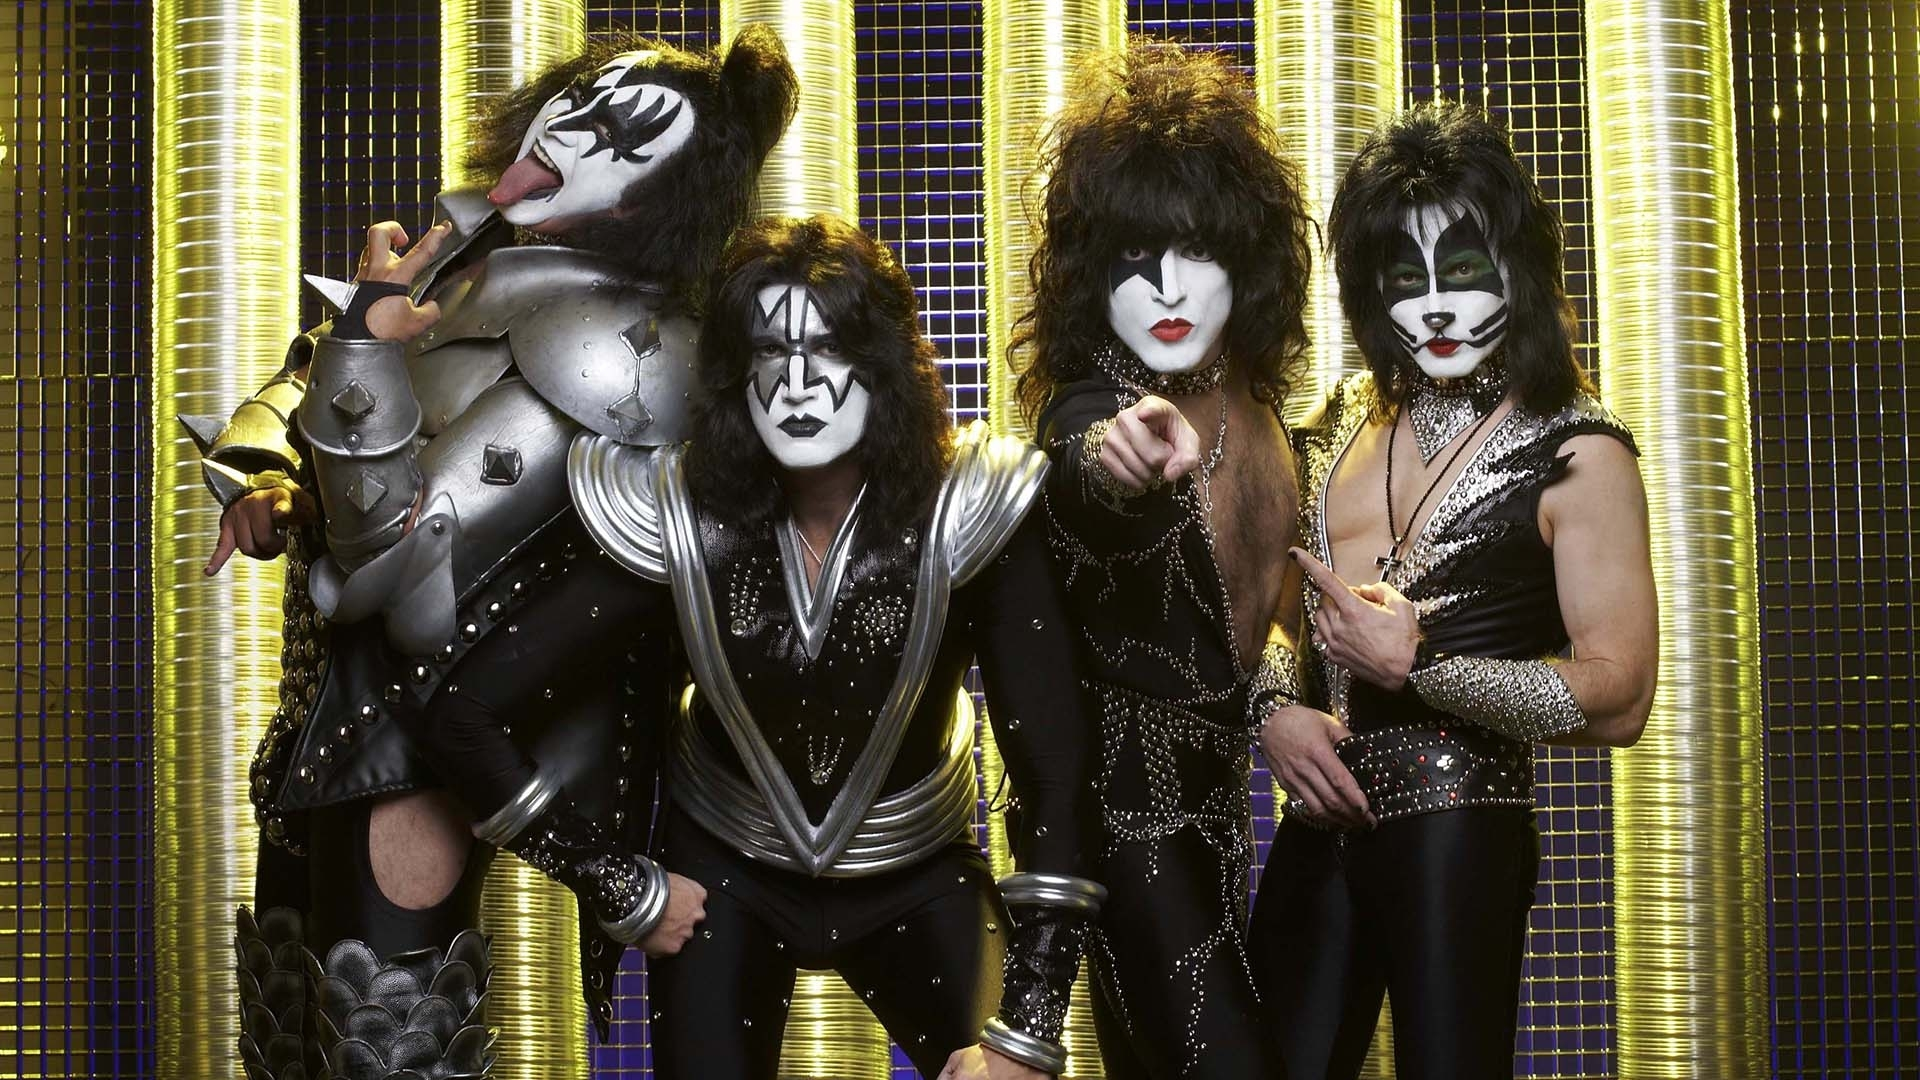 kiss hd 1080p - photo #27